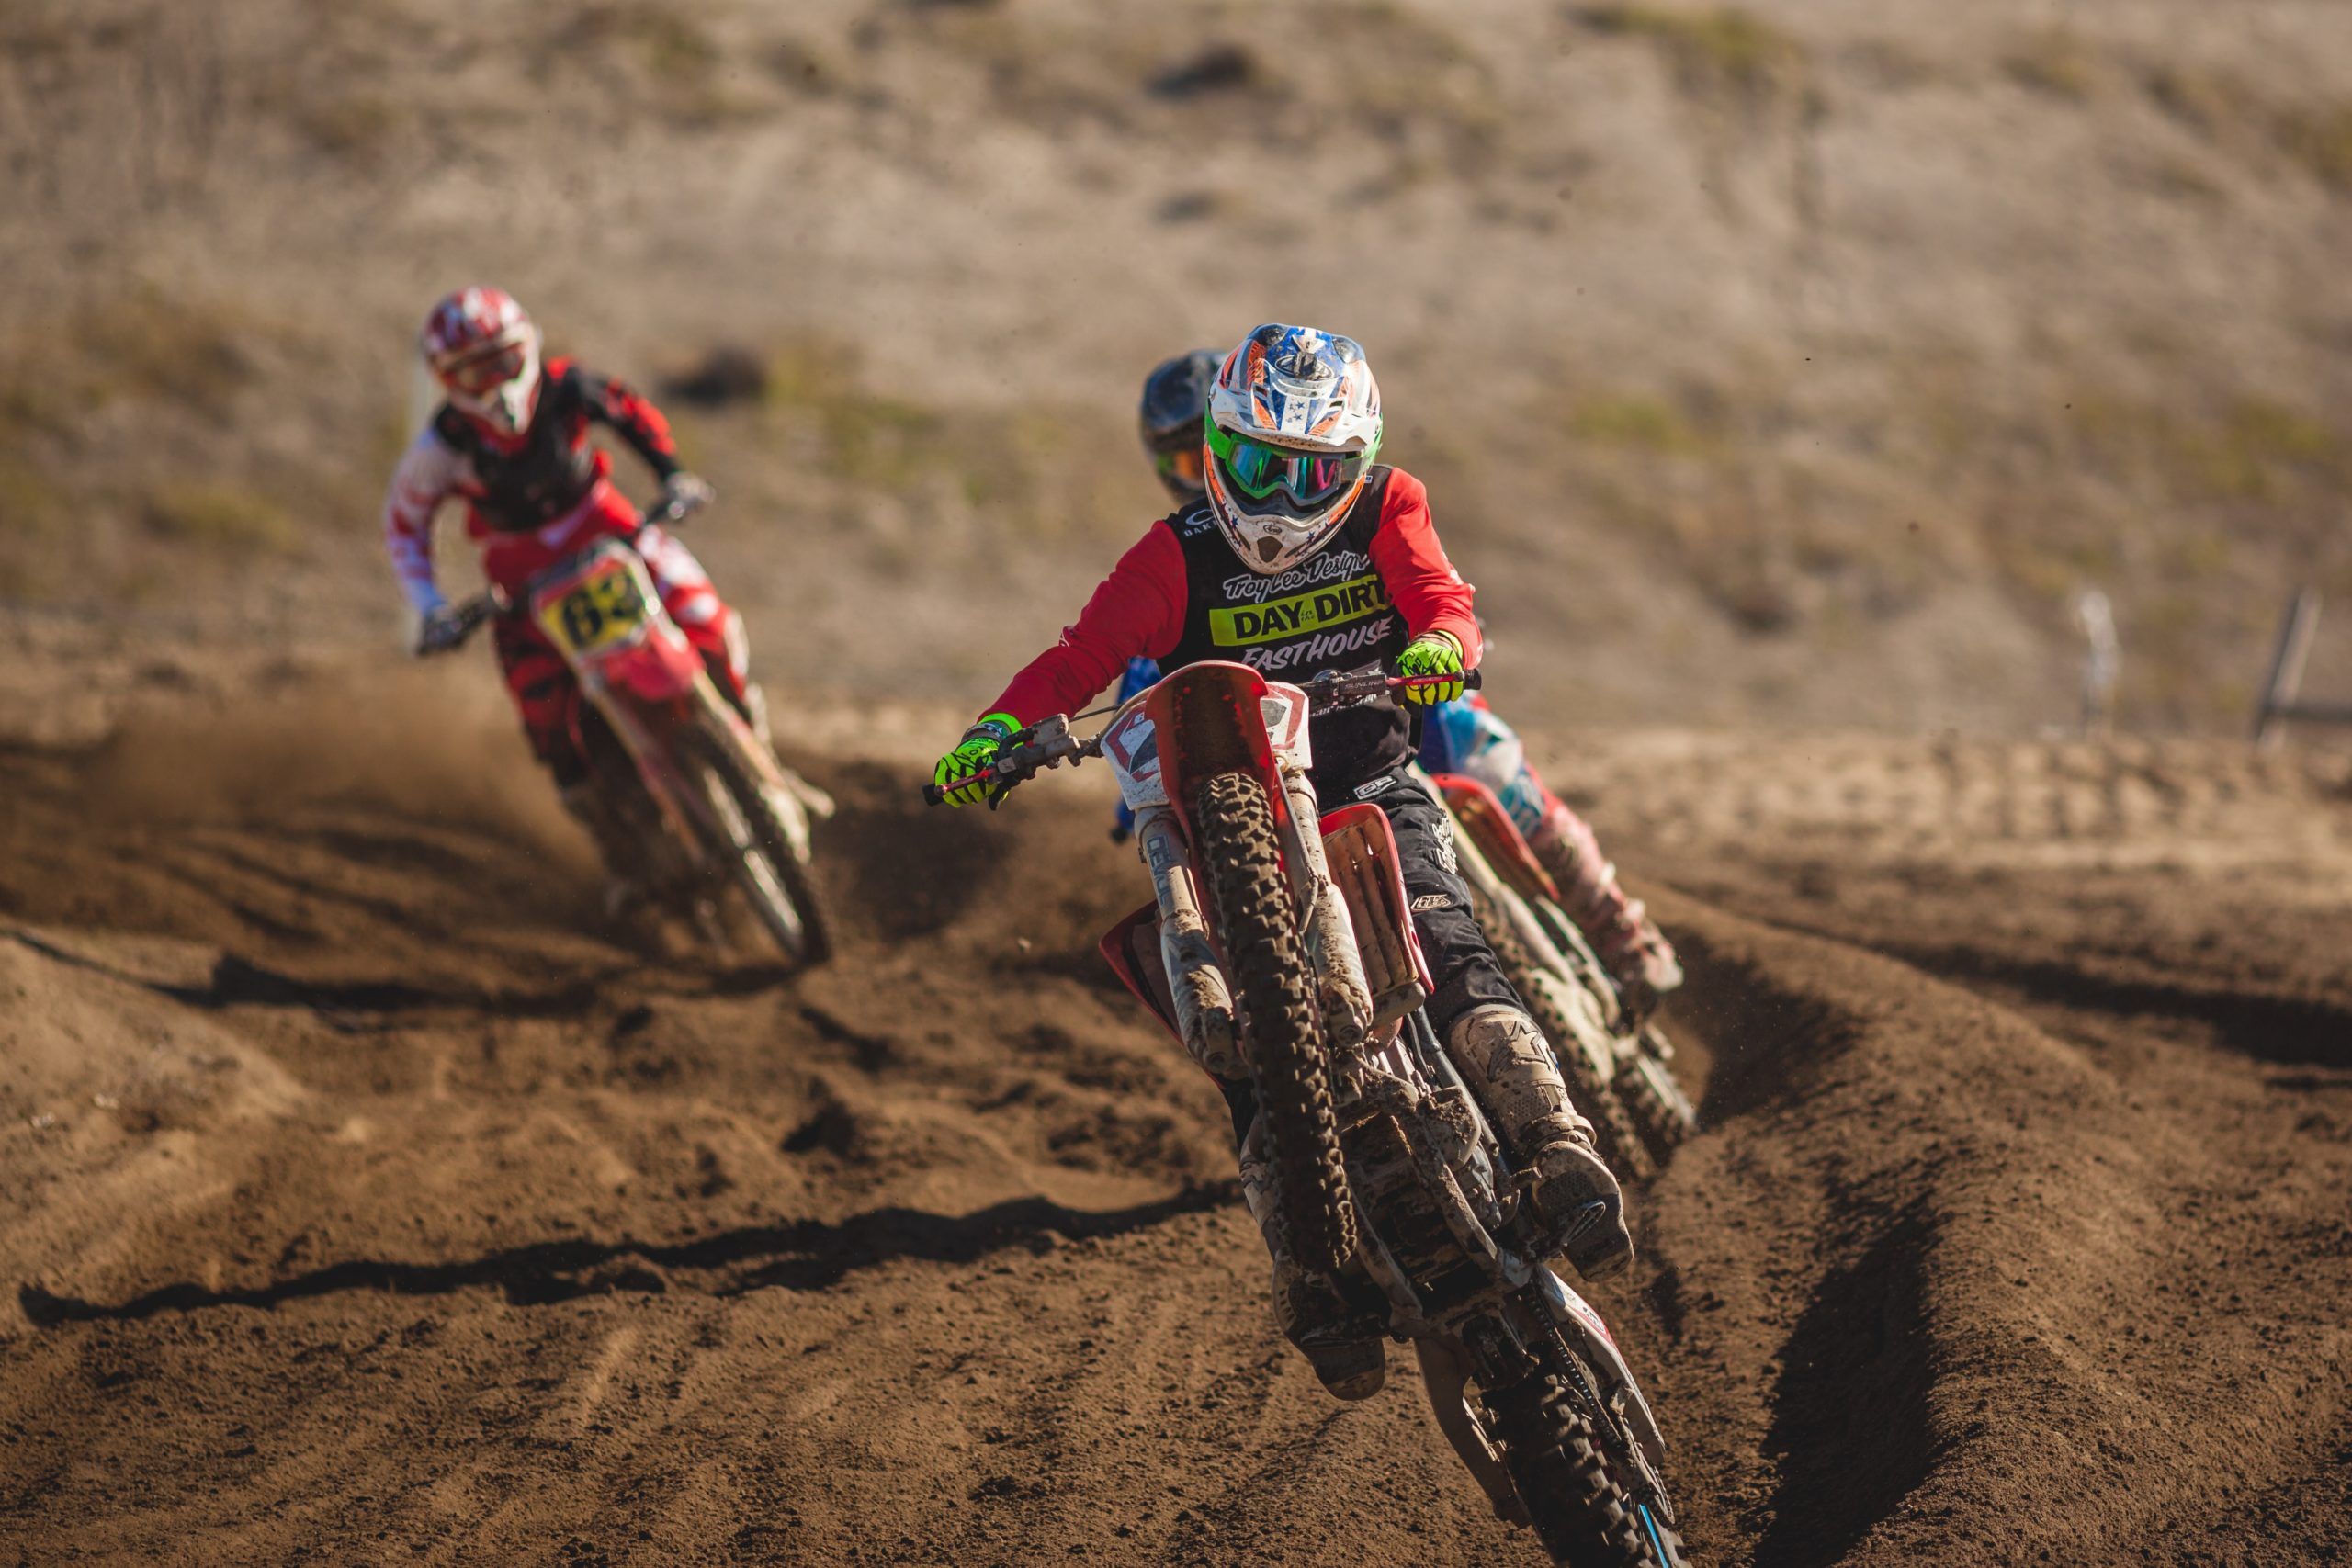 Best Dirt Bike Boots for Trail Riding